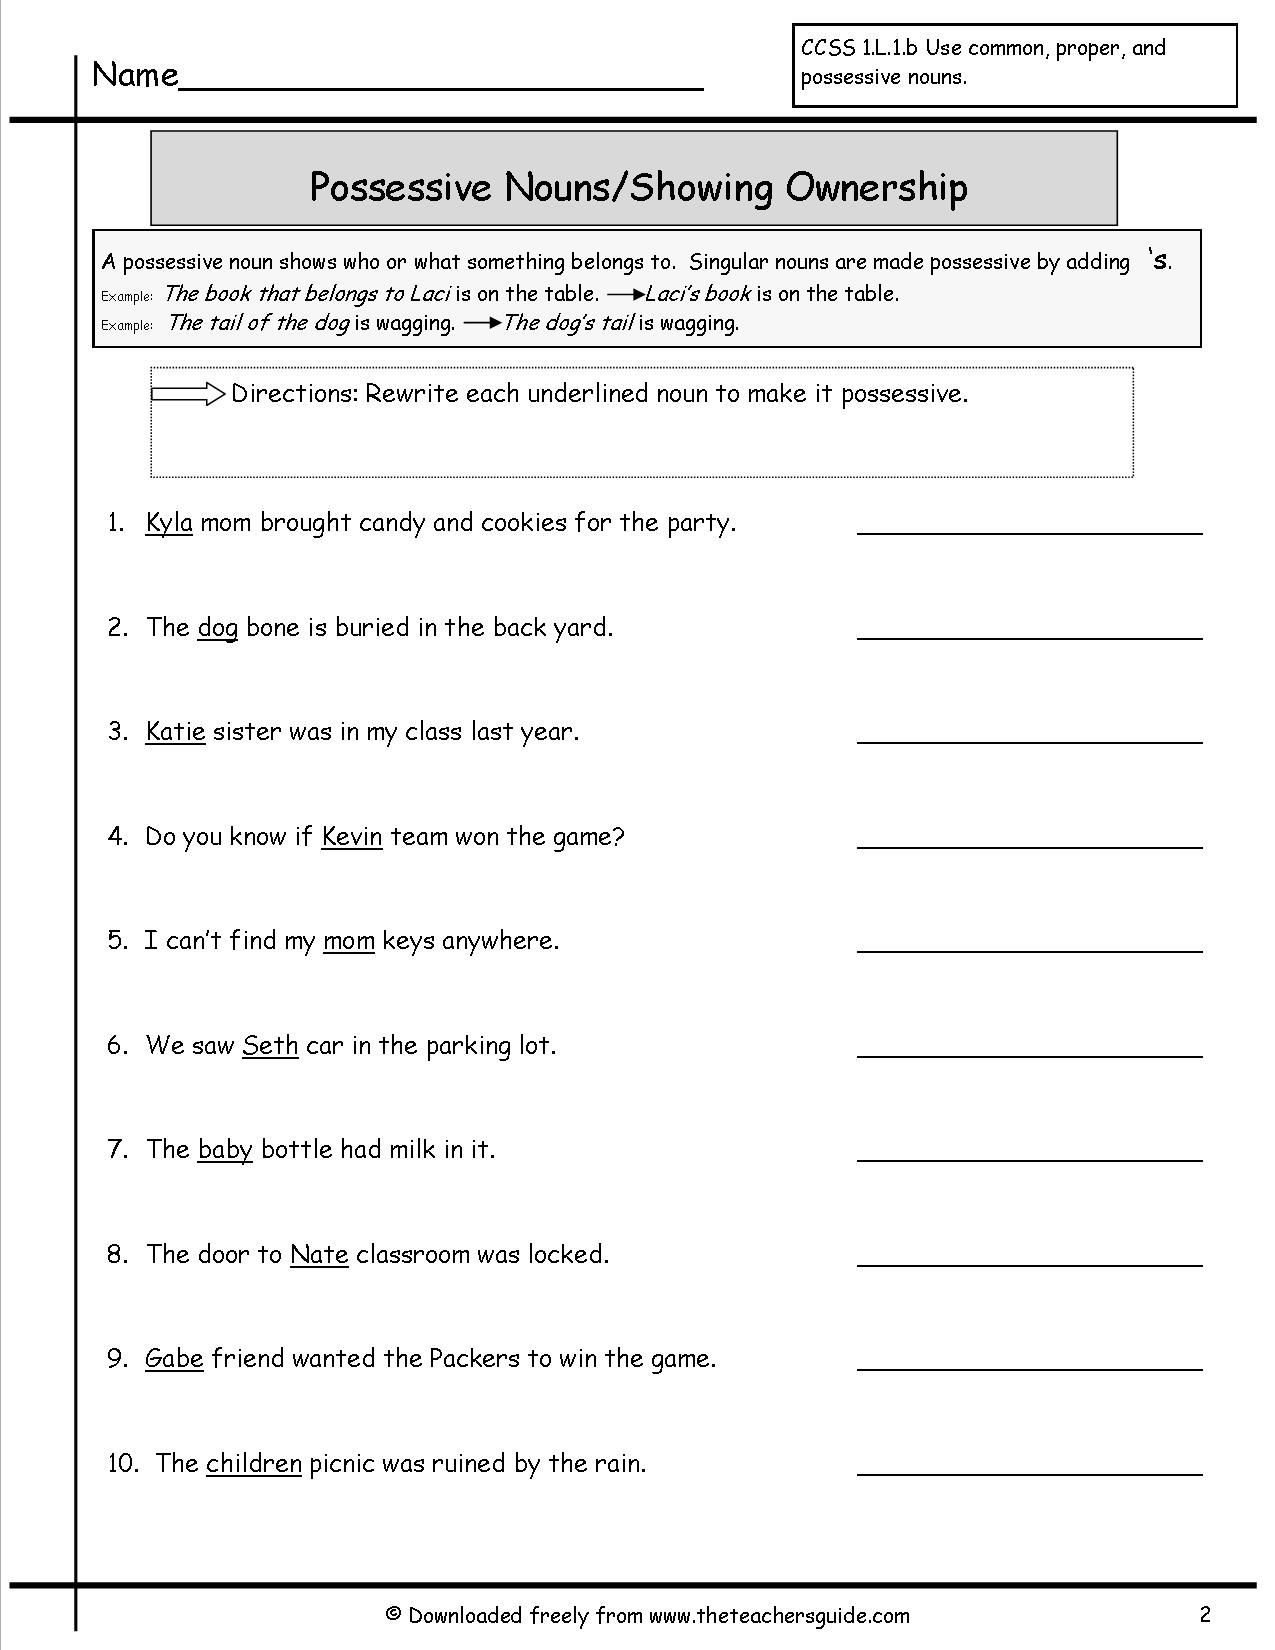 Possessive Pronouns Worksheet 2nd Grade 37 Clever Possessive Nouns Worksheets Design S